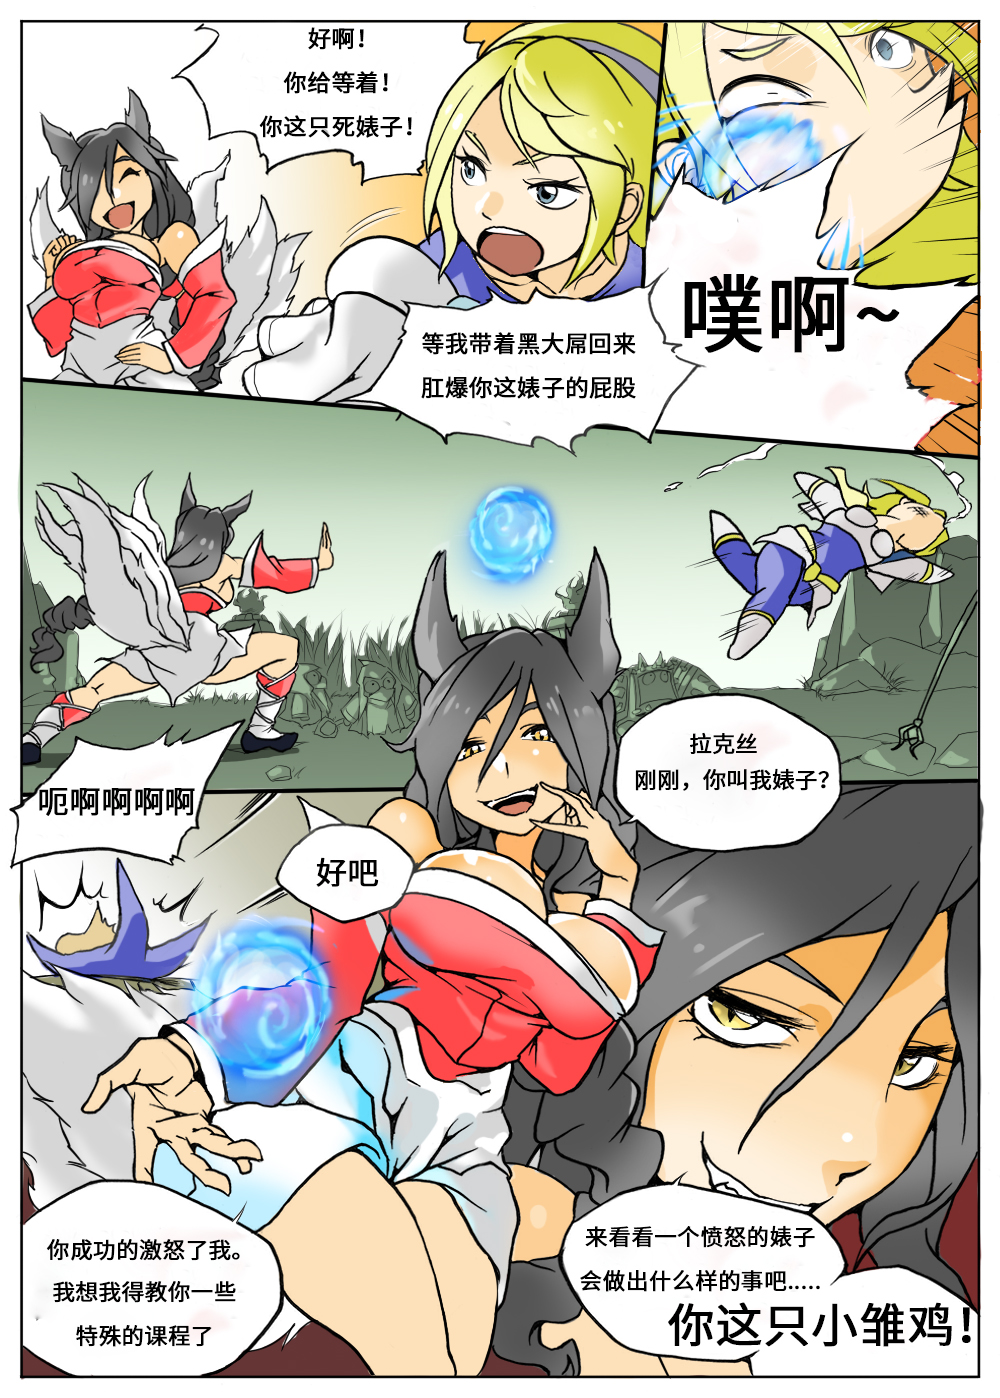 [KimMundo] Lux Gets Ganked![Chinese] [沒有漢化]3